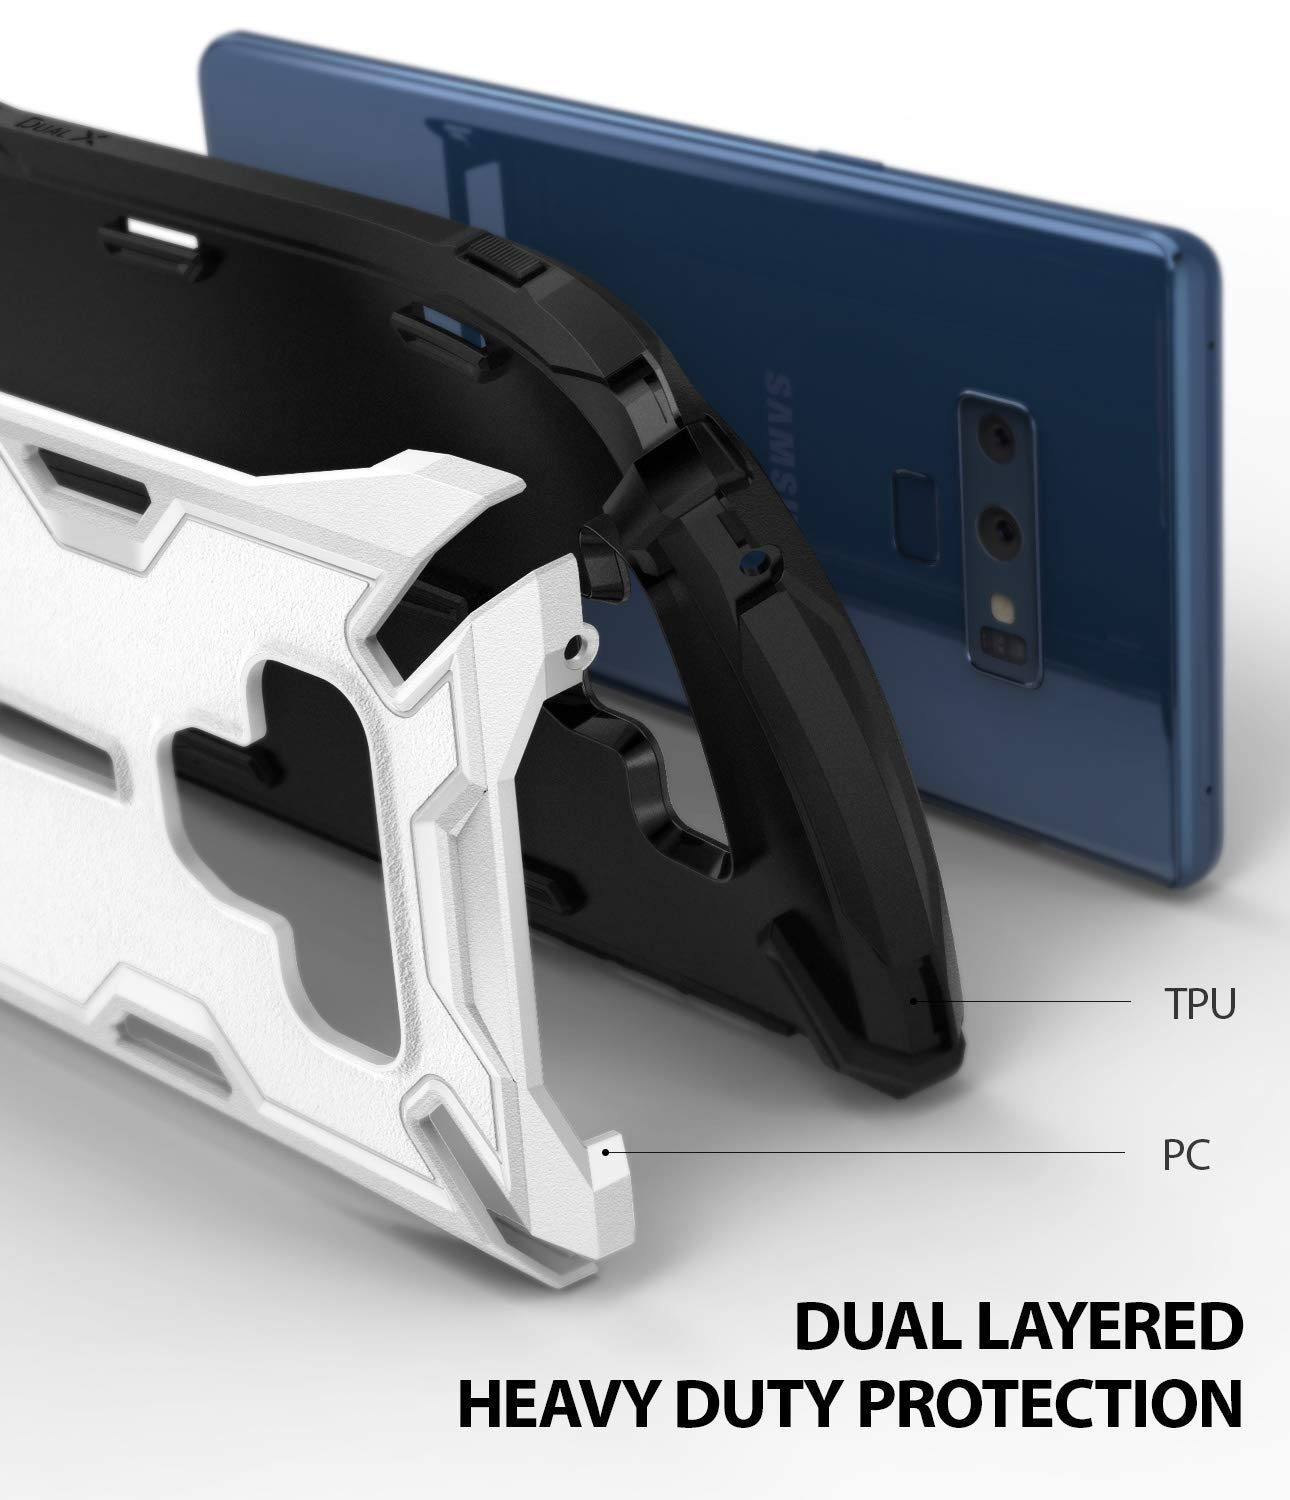 dual layer heavy duty protection with pc and tpu